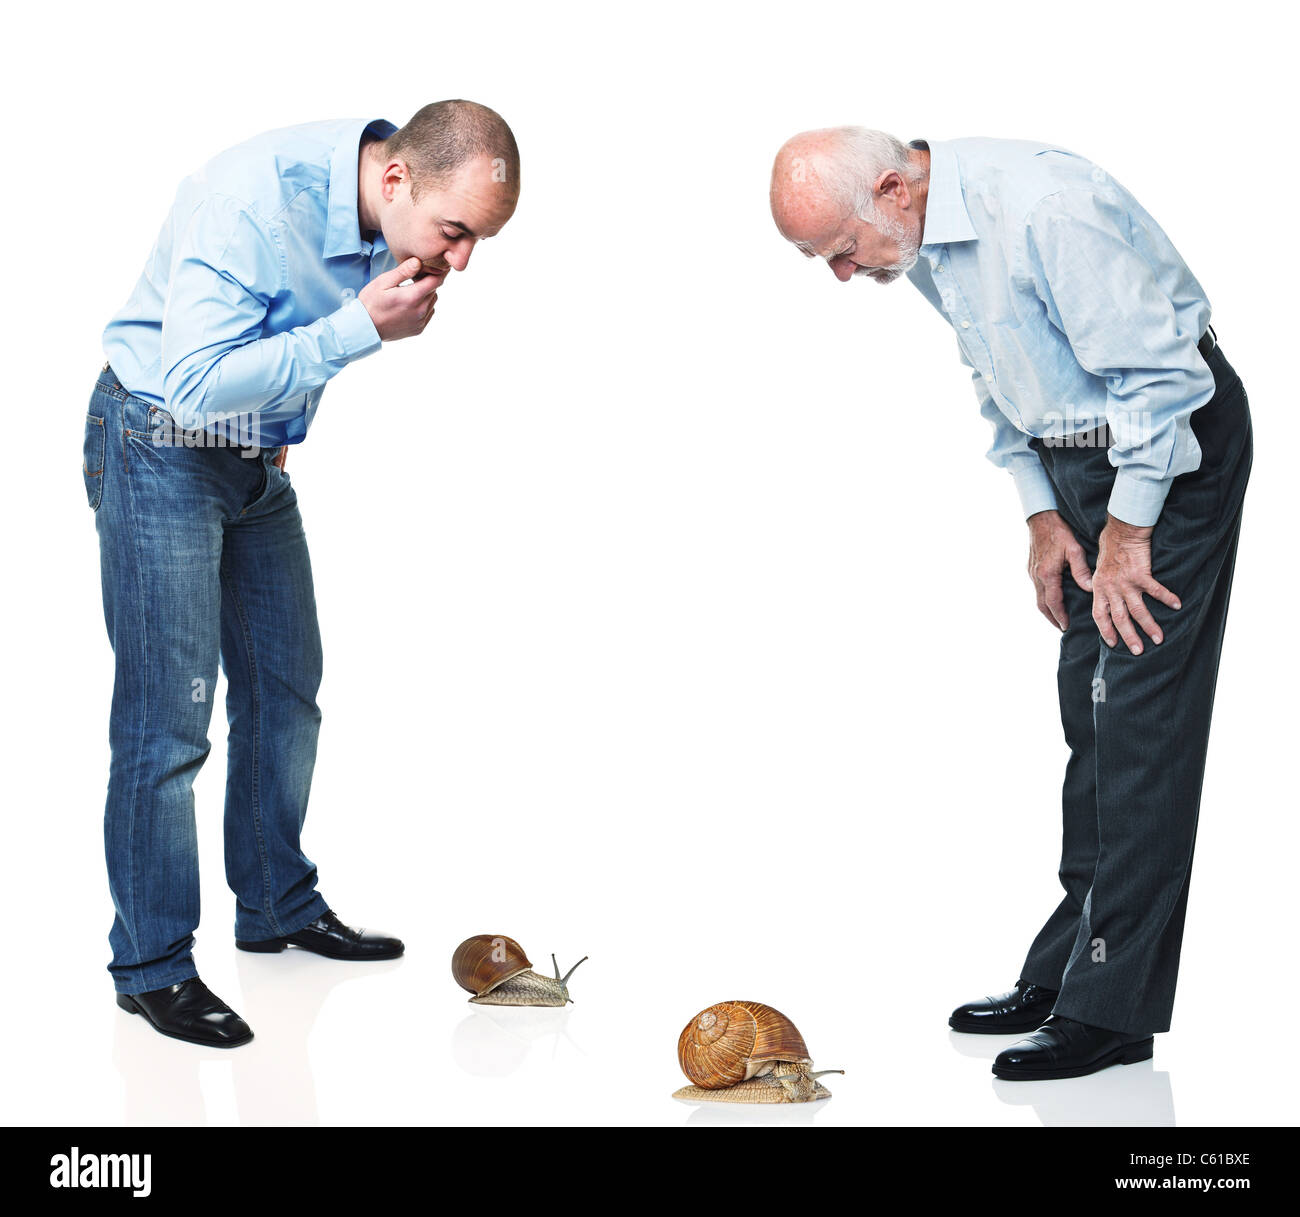 two man look at snail race - Stock Image